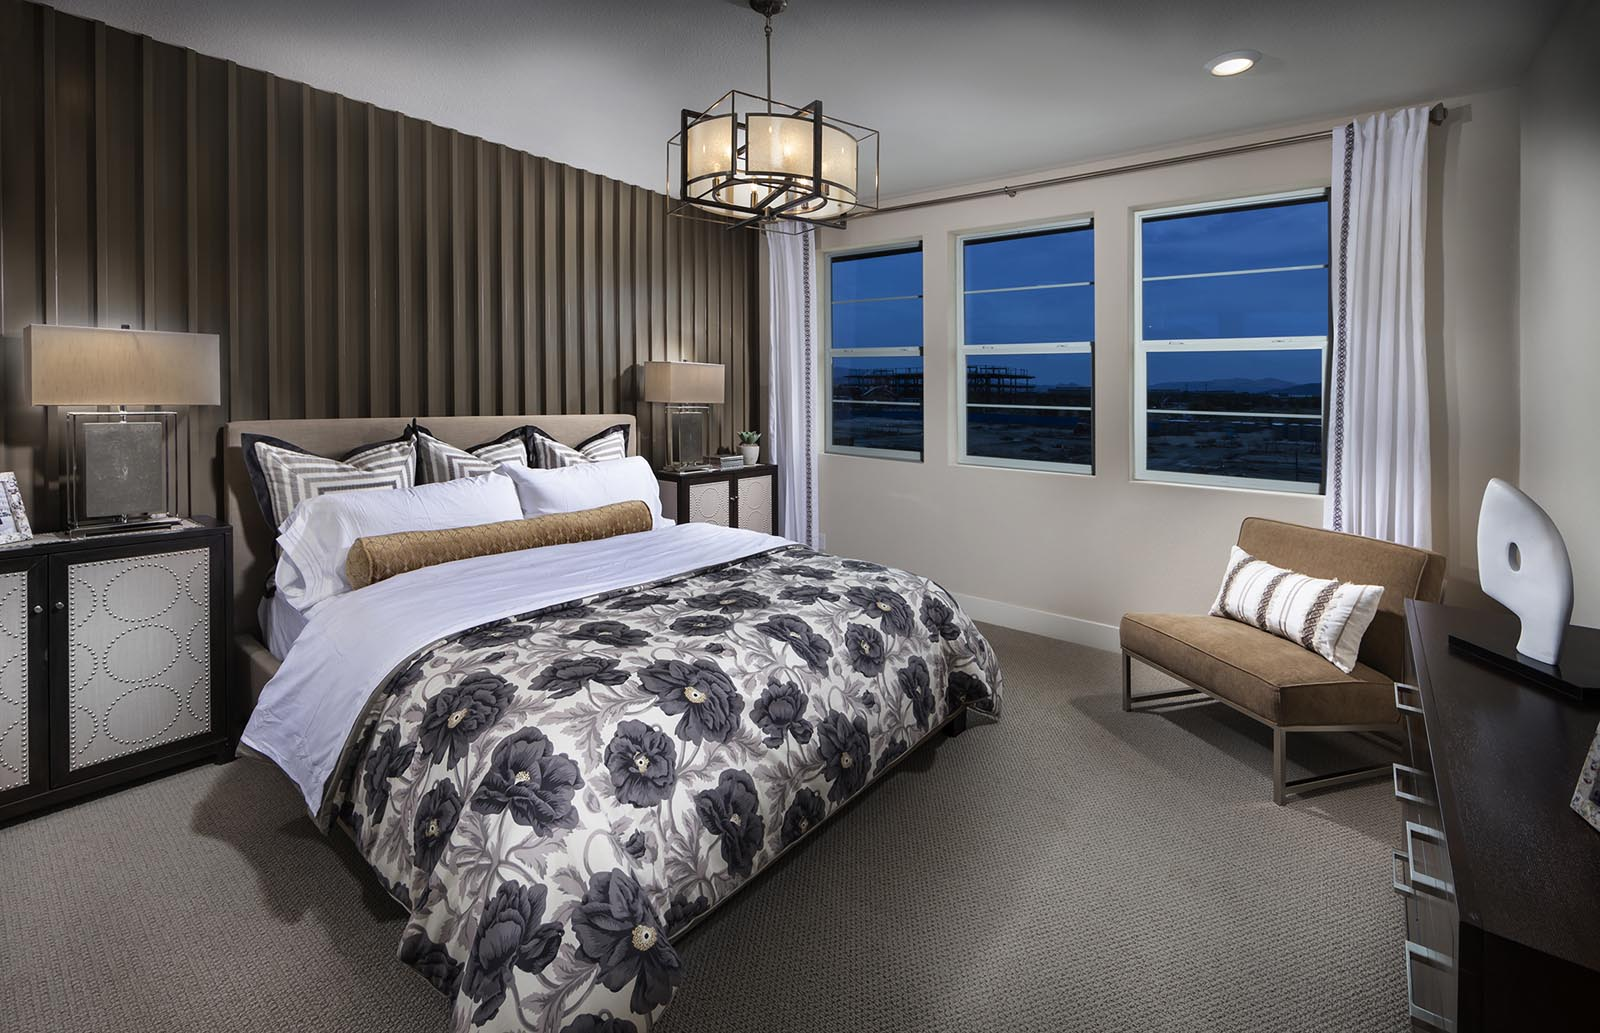 Owner's Suite window Residence 4 | Downing at Boulevard by Lennar, Dublin, CA